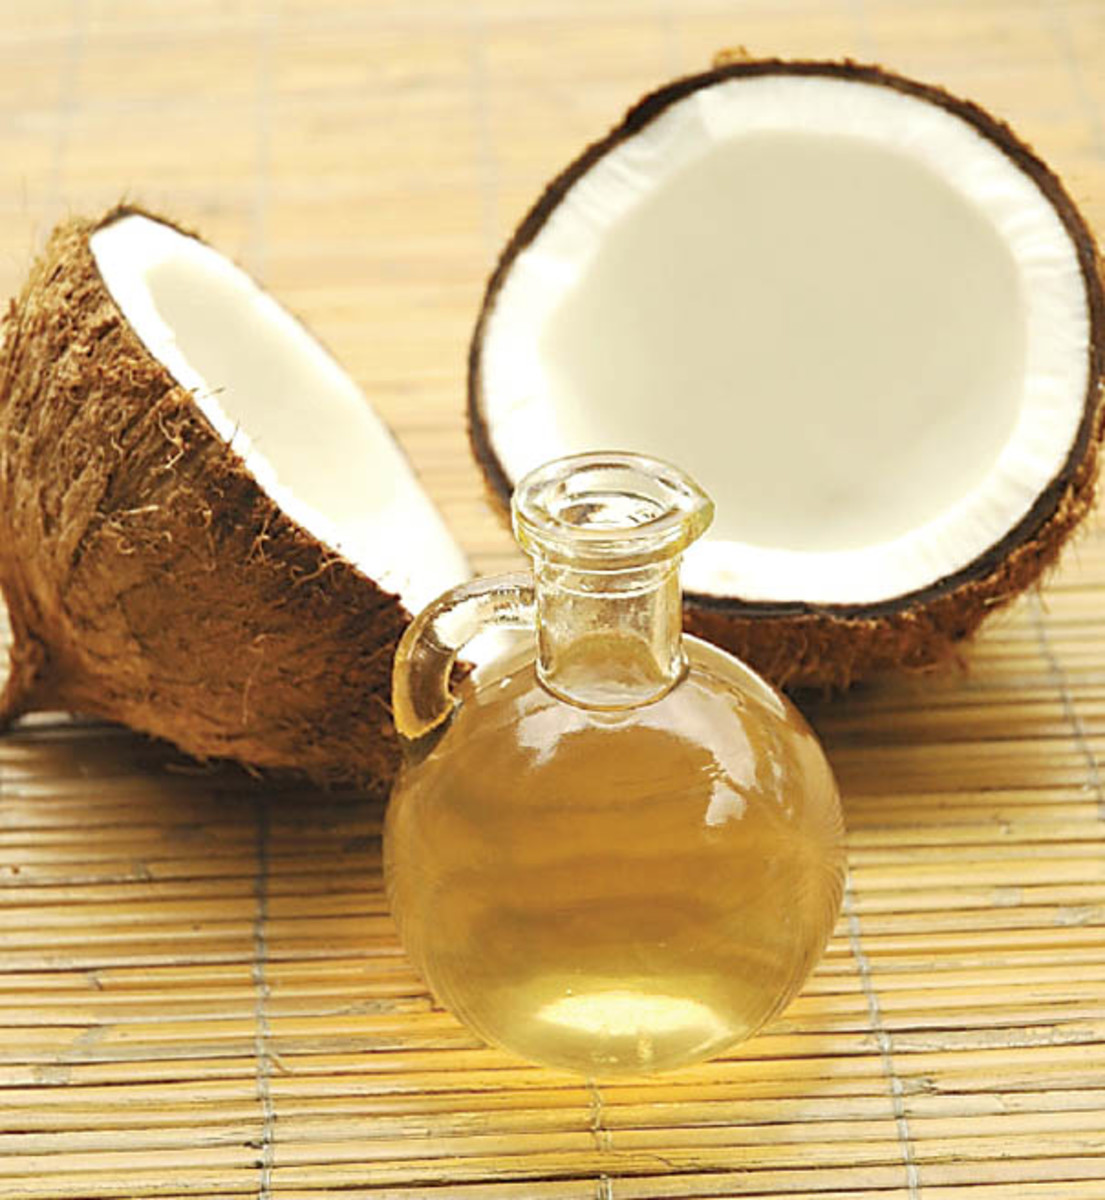 Coconut oil can be remarkably beneficial both when eaten and when applied topically.